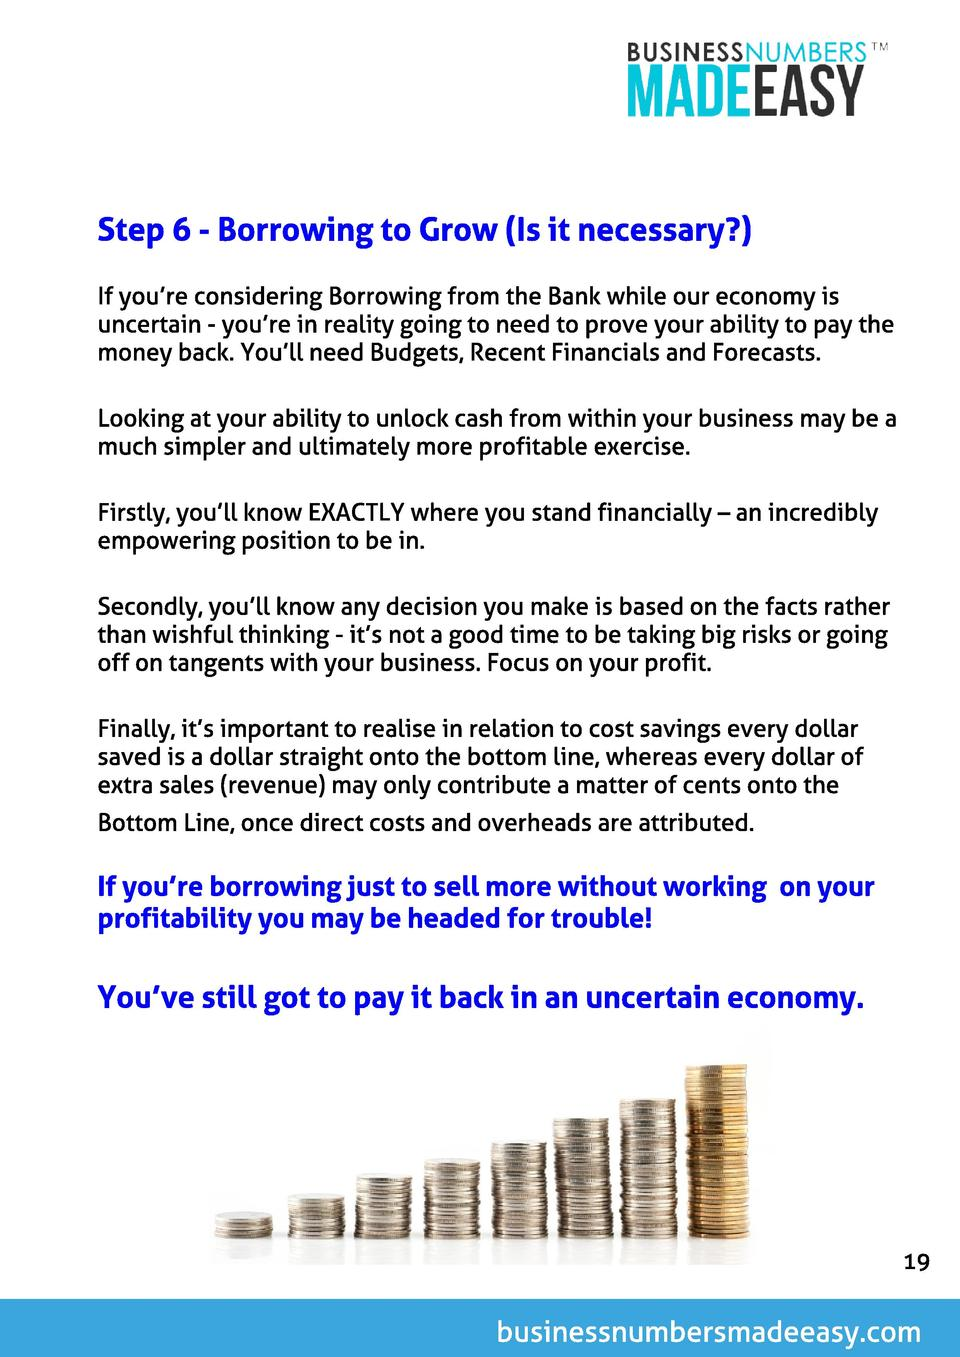 St ep 6 - Borrowing t o Grow  Is it necessary   If you re considering Borrowing from the Bank while our economy is uncerta...